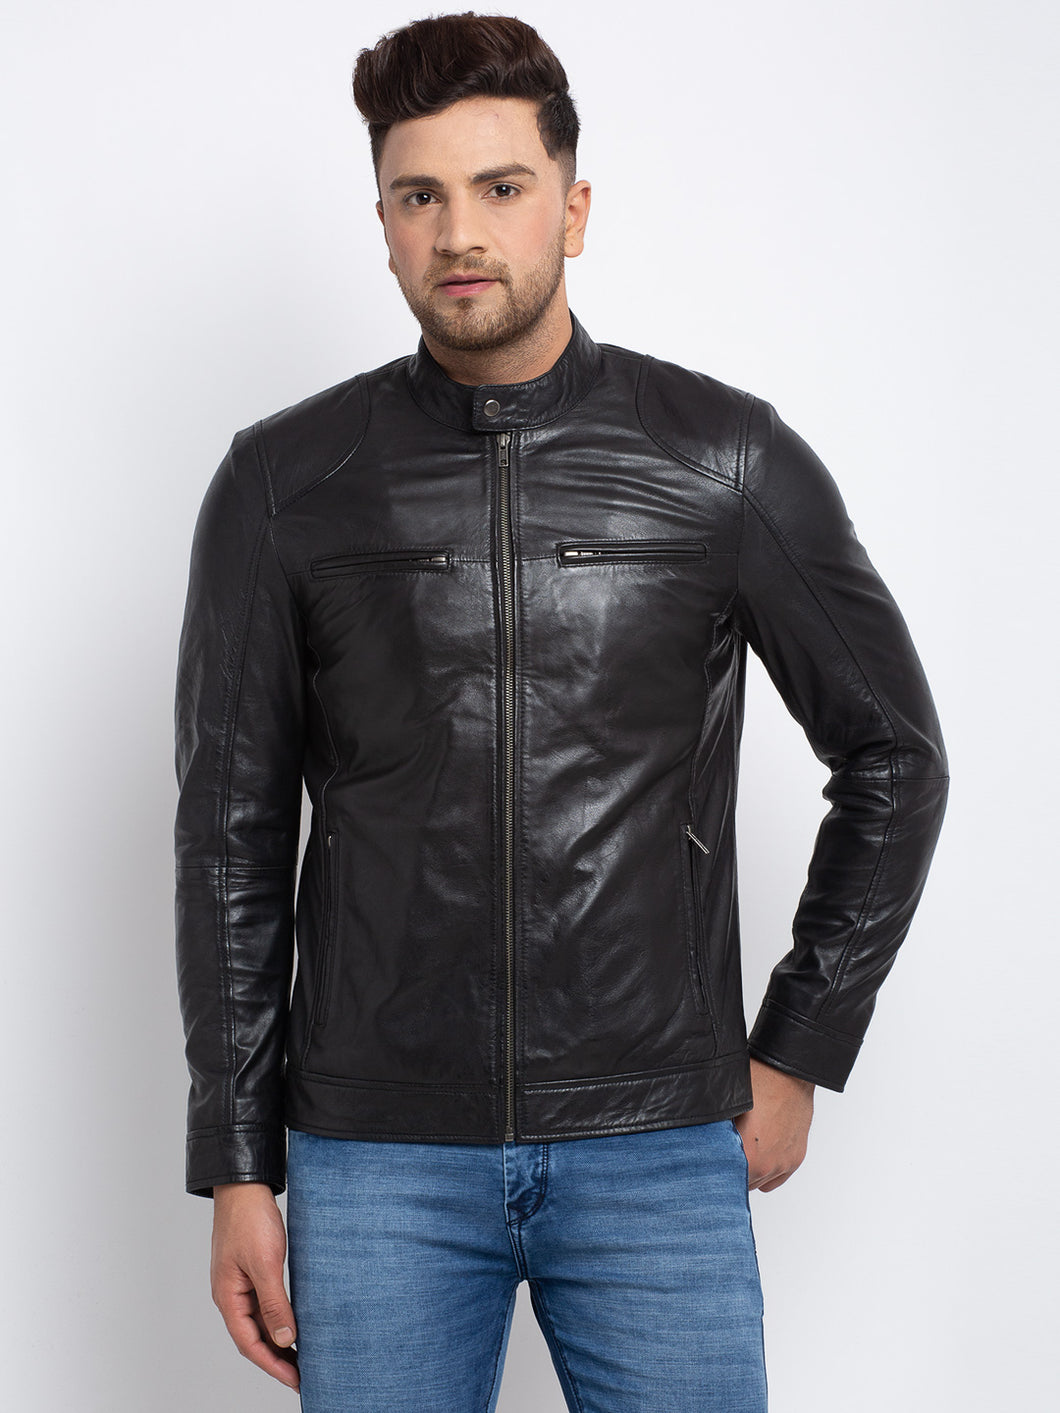 Teakwood Leathers  Men's 100% Genuine Black Leather Jacket